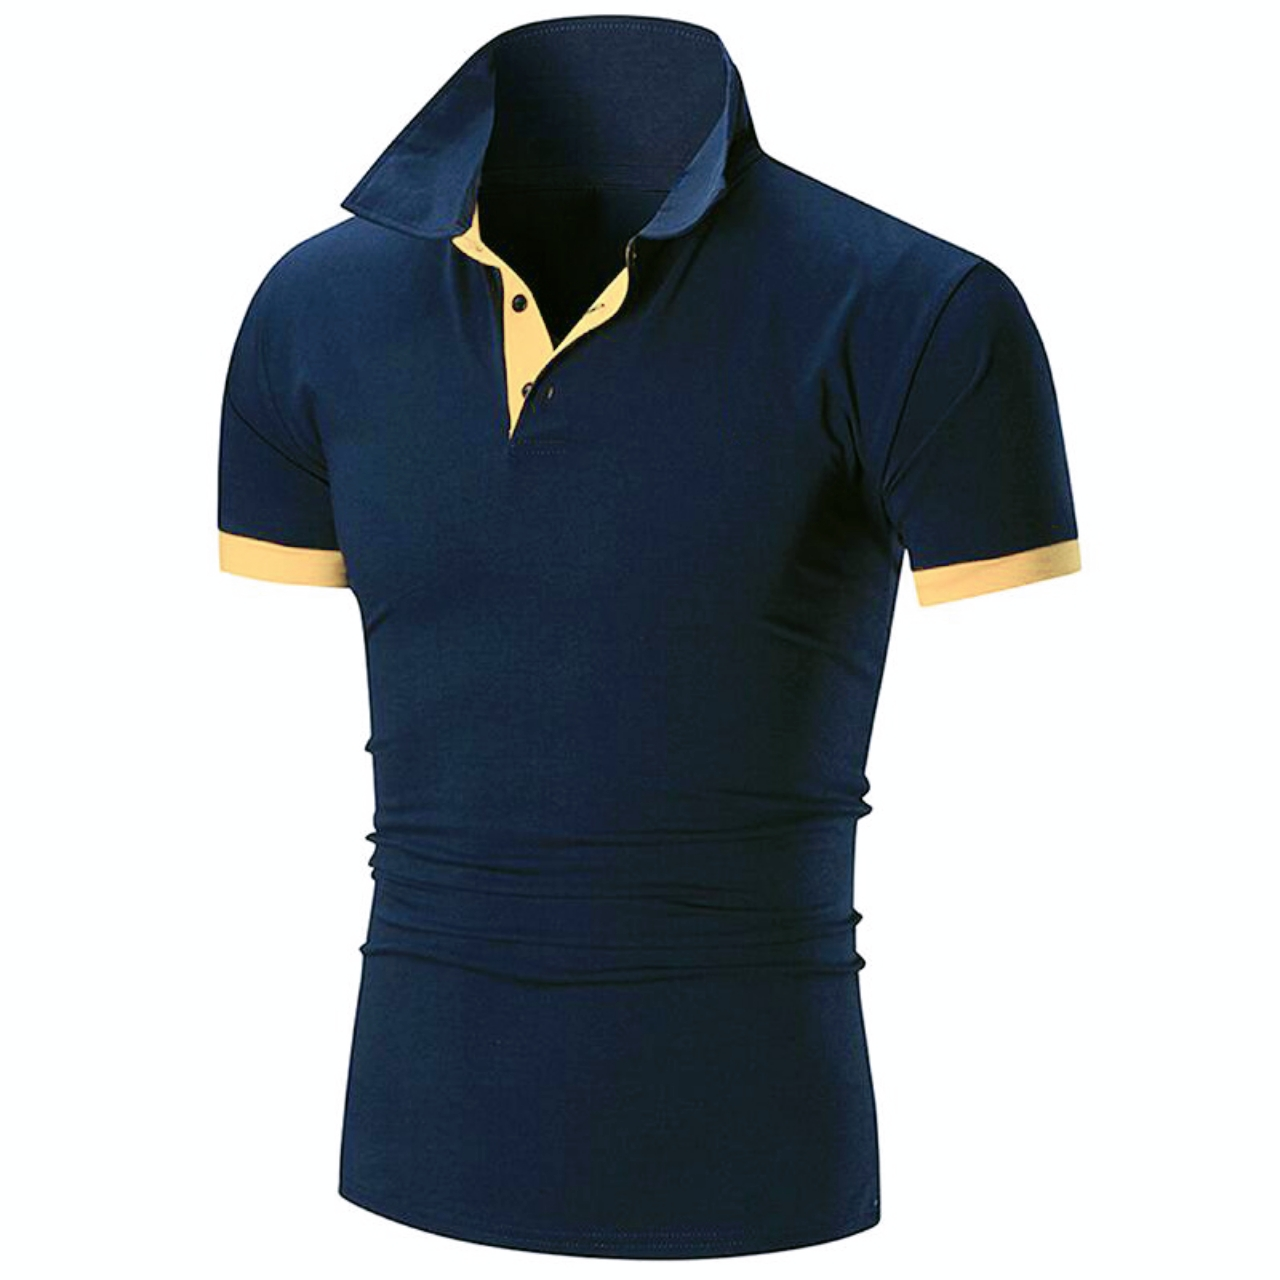 Covrlge Polo Shirt Men Summer Stritching Men's Shorts Sleeve Polo Business Clothes Luxury Men Tee Shirt Brand Polos MTP129 6